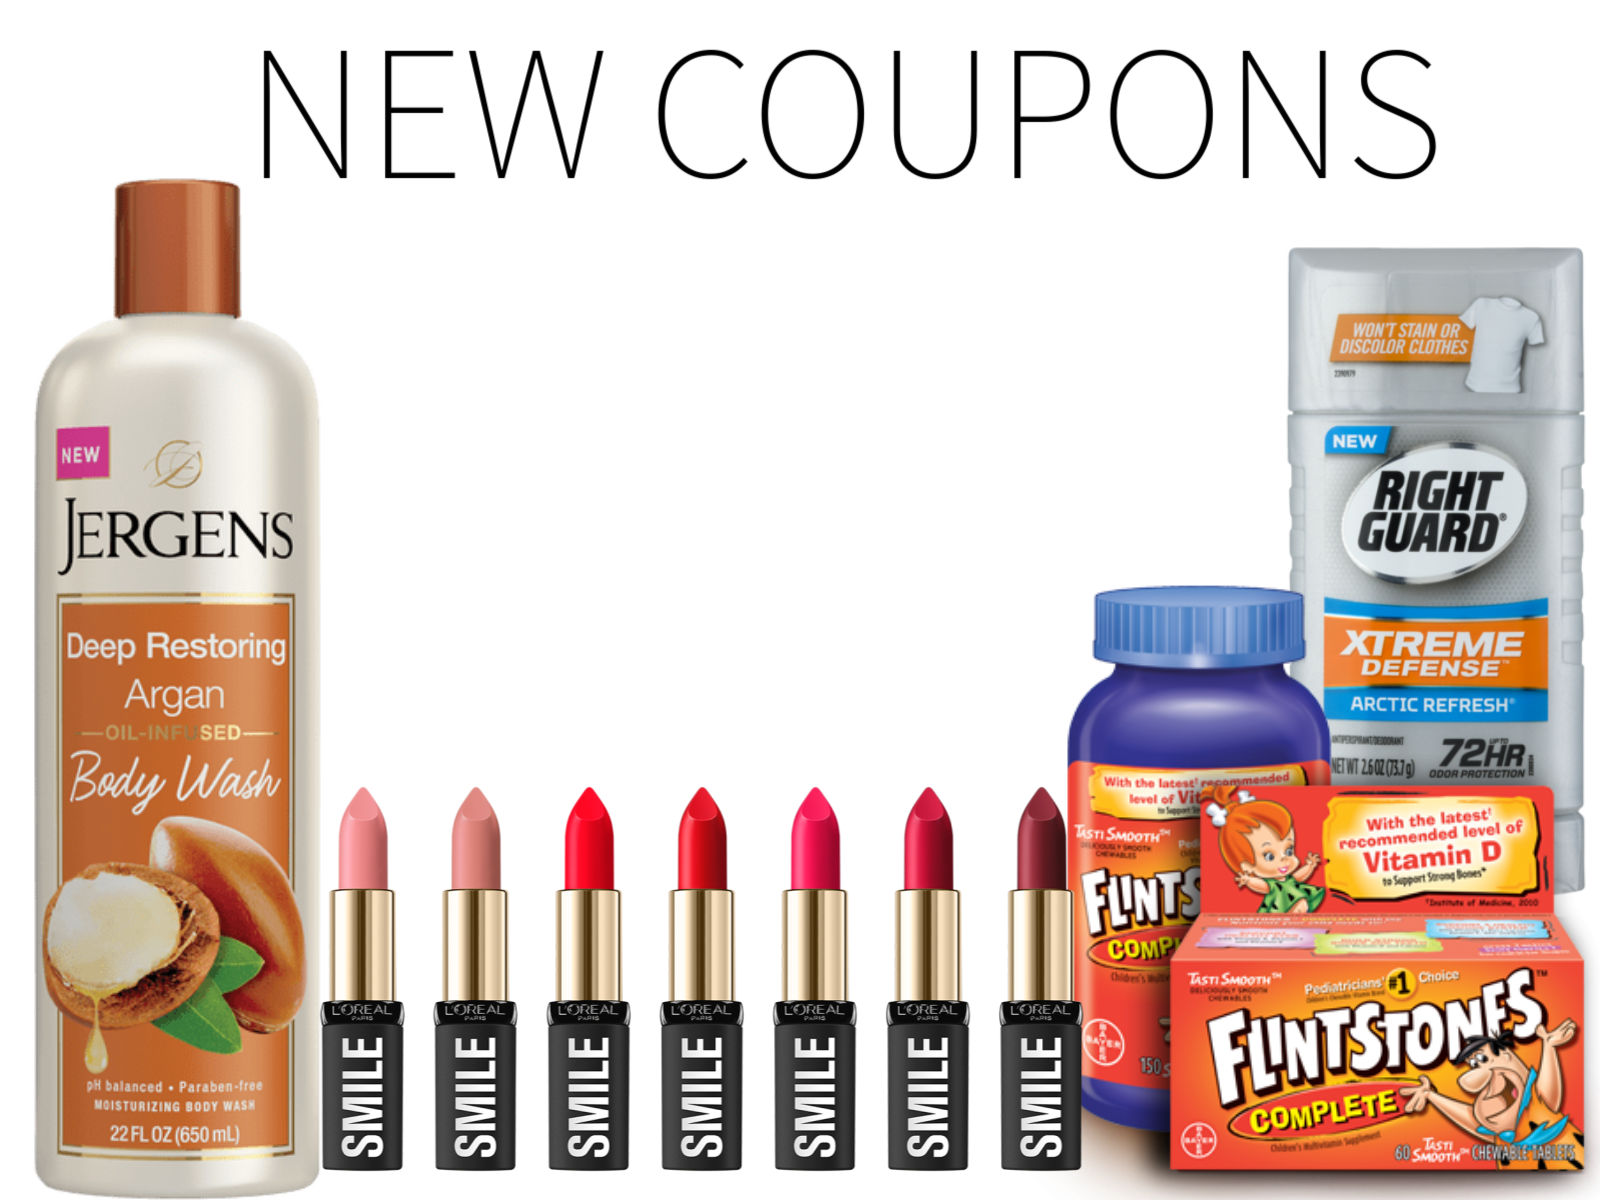 Awesome New Coupons To Print - Grab Yours While You Can! on I Heart Publix